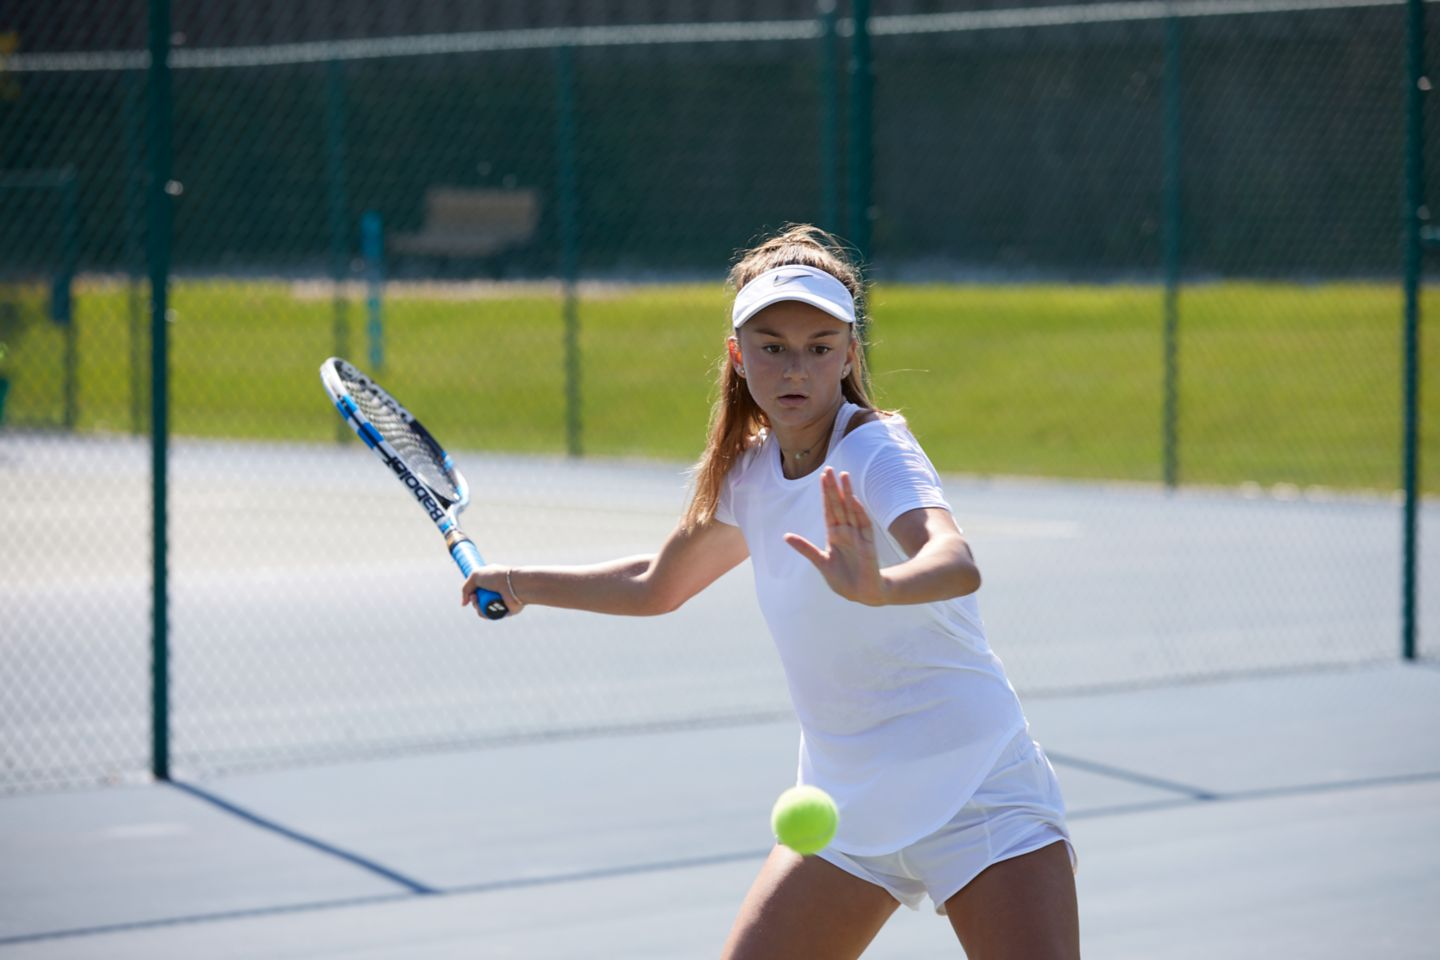 Youth tennis player playing on outdoor courts